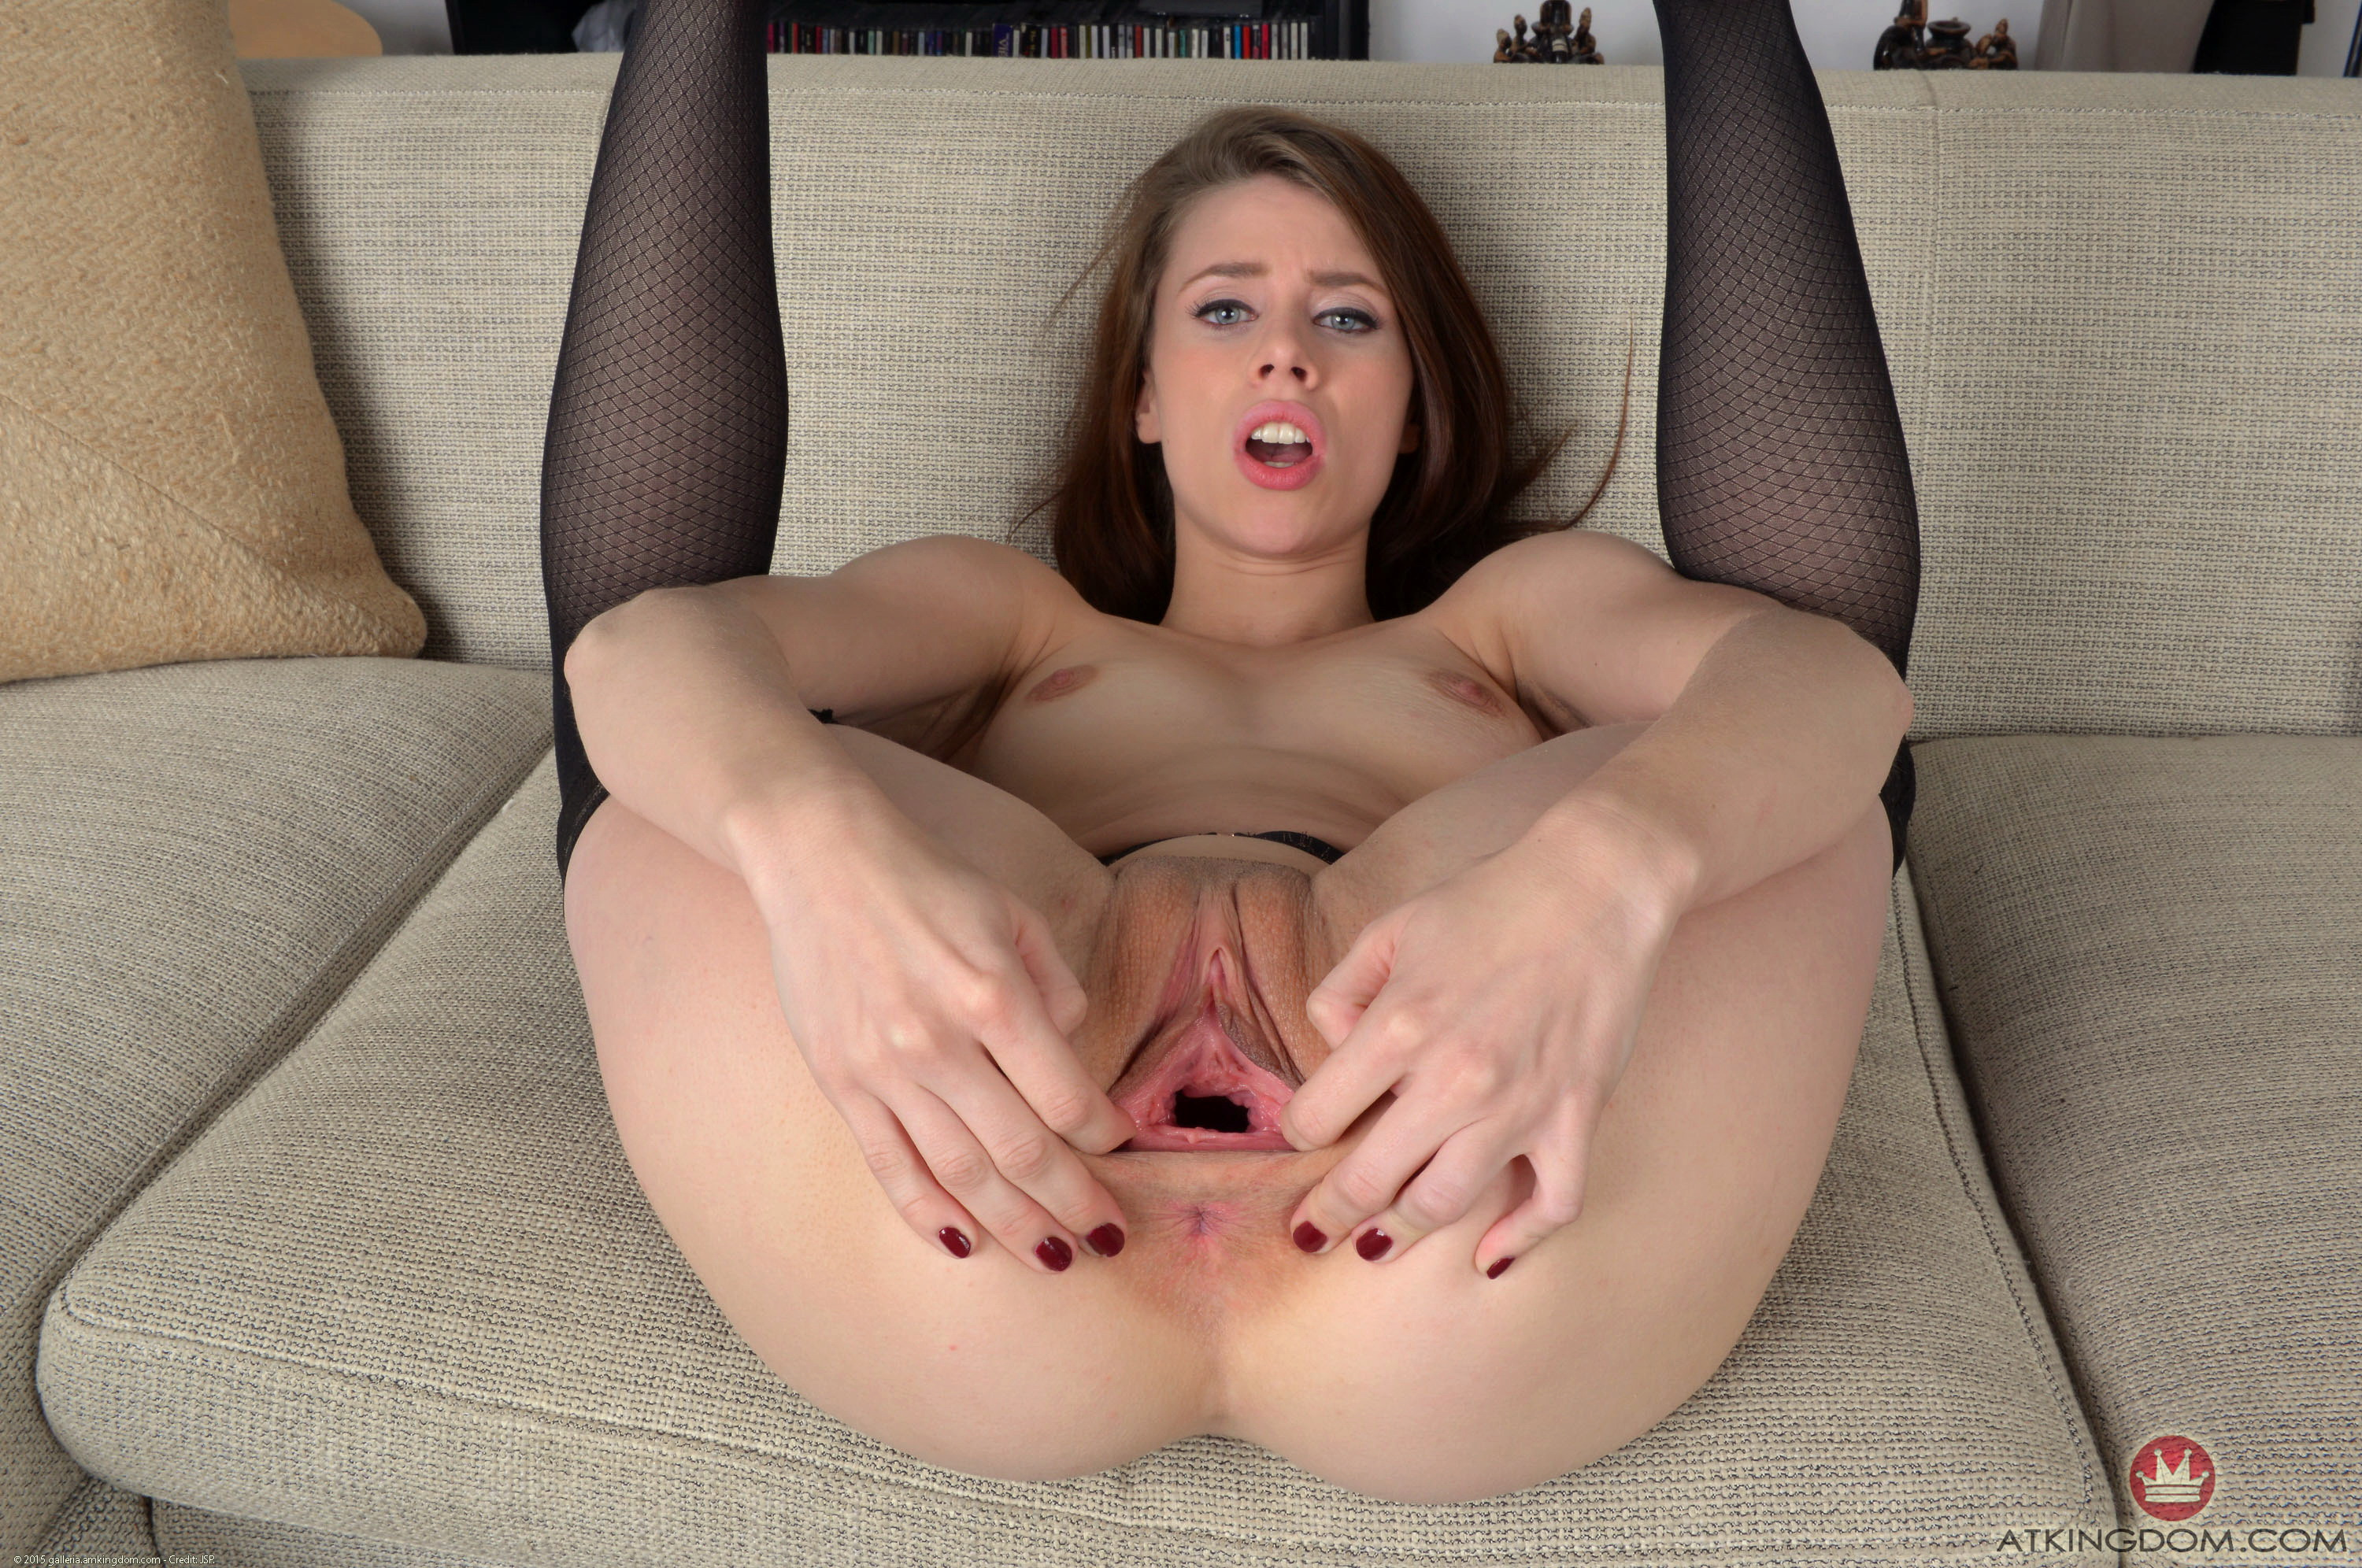 18 year old reverse cowgirl 9